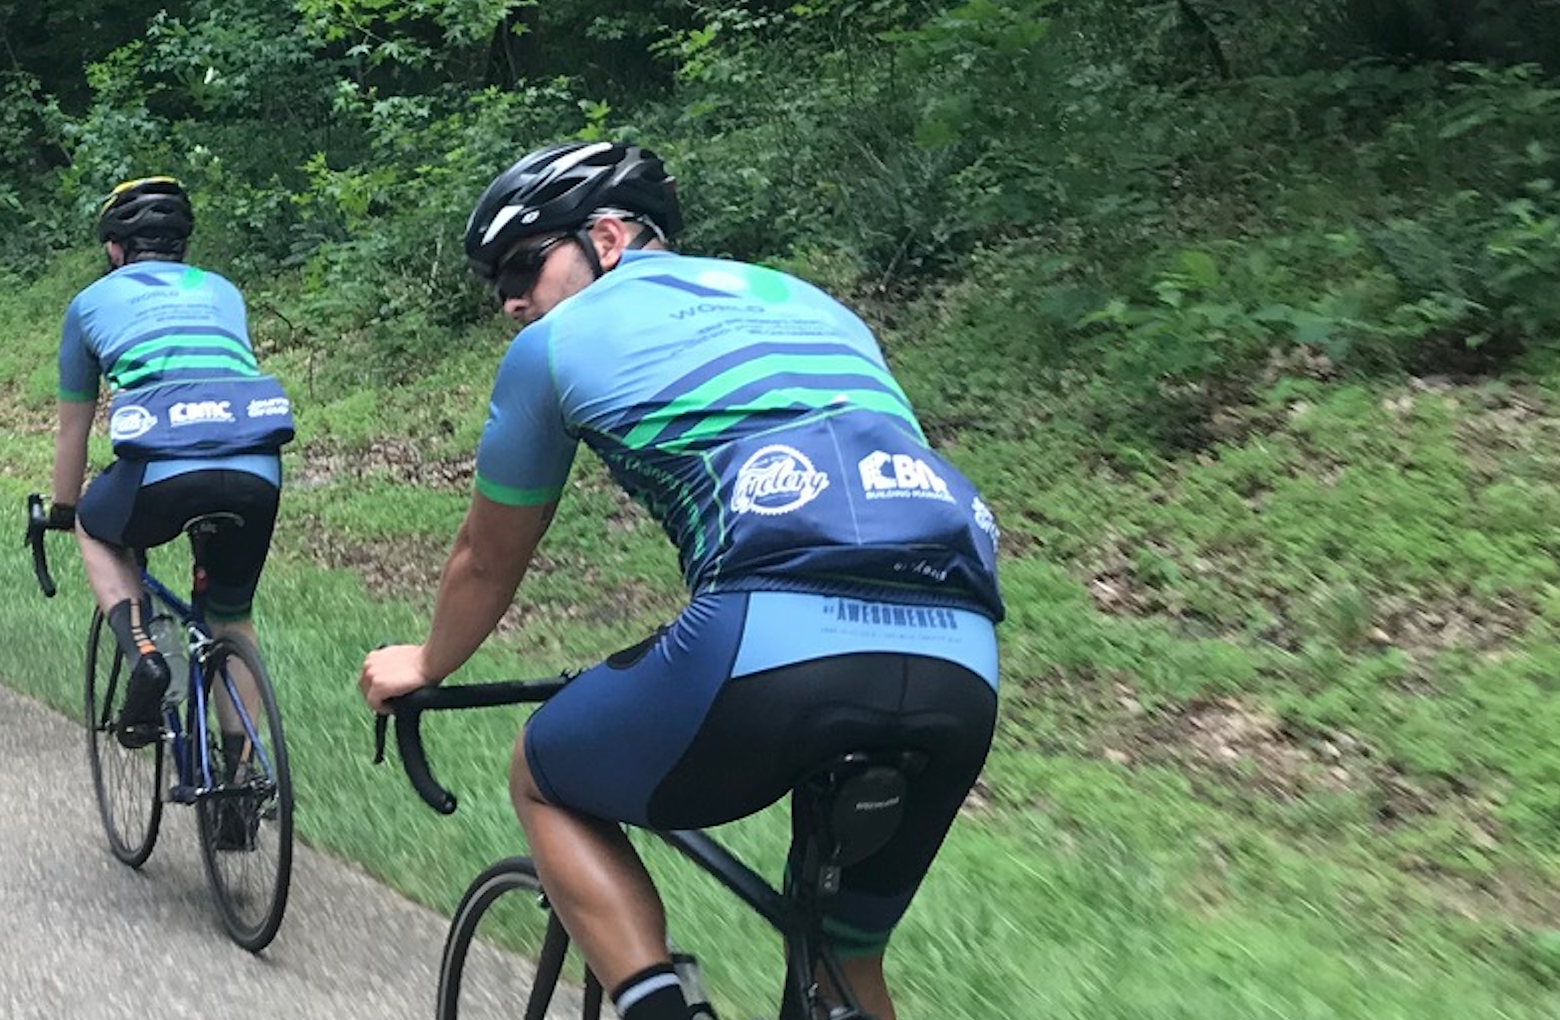 SPONSOR - Each year we're humbled by the outpouring of support from local businesses, friends of friends and especially our families. If you aren't already supporting an individual rider, consider becoming a team sponsor. Your gift will raise us up and help us to go farther.